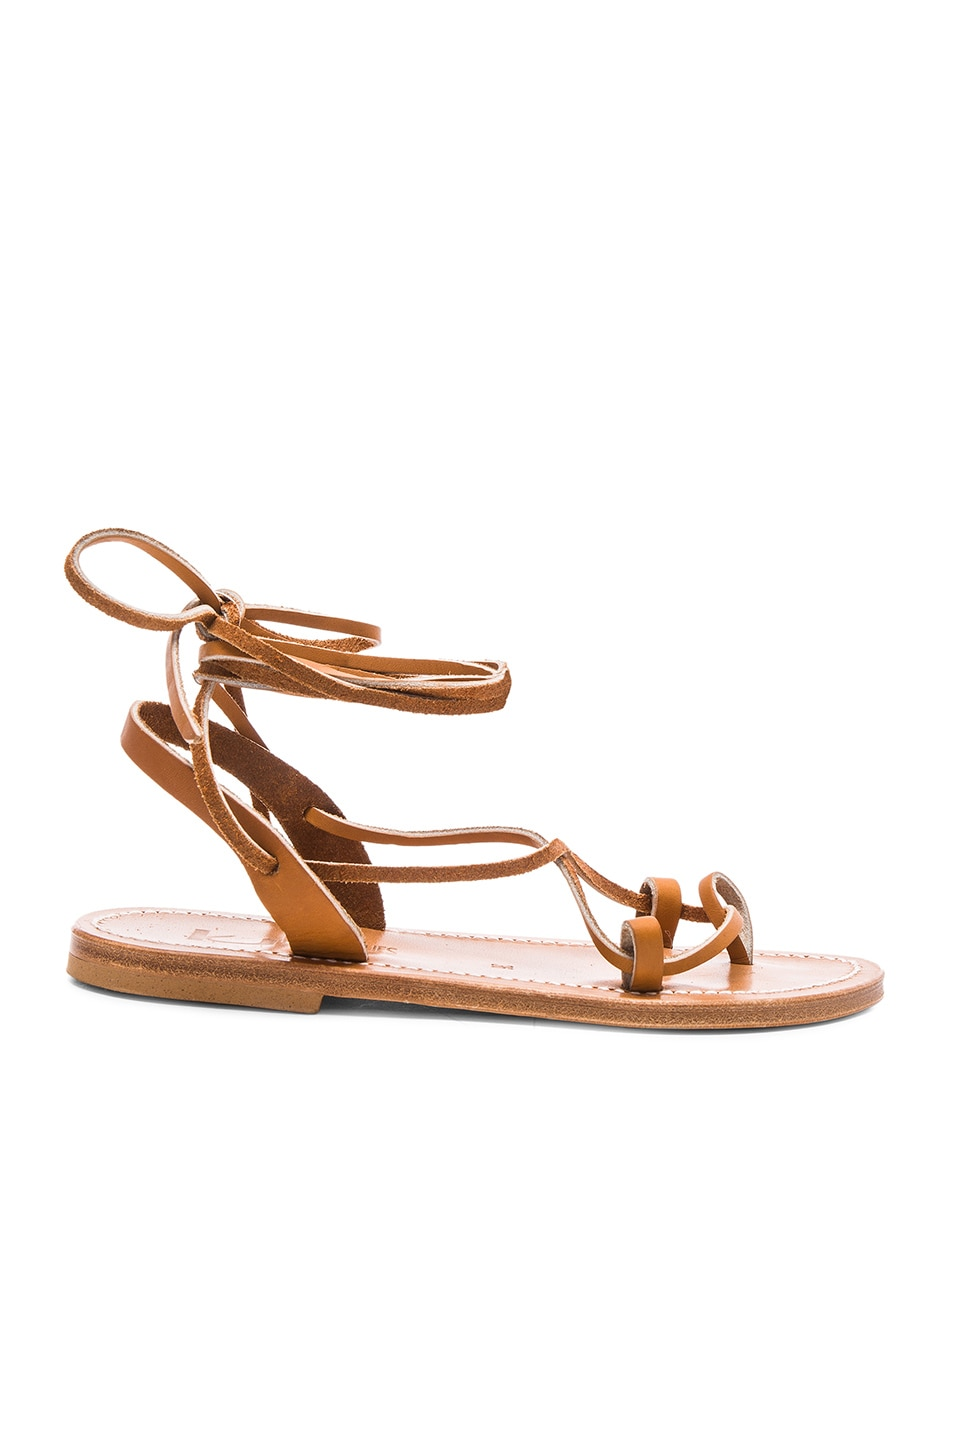 Image 1 of K Jacques Leather Lucile Sandals in Pul Natural